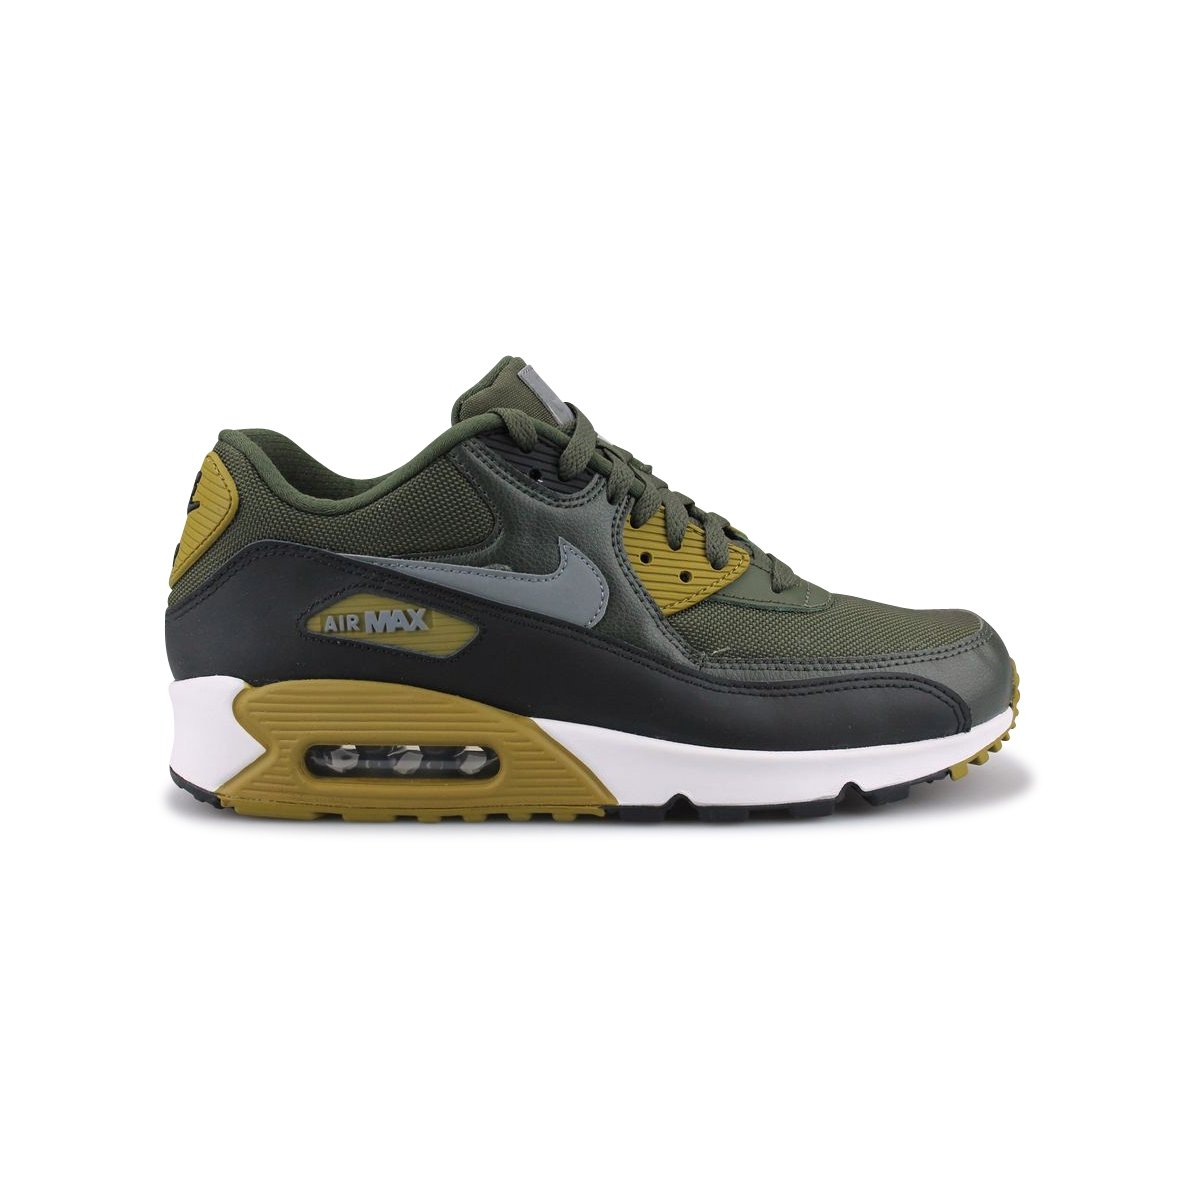 reputable site 50110 f0b0c Galleon - NIKE Air Max 90 Essential Mens 537384-307 Size 7